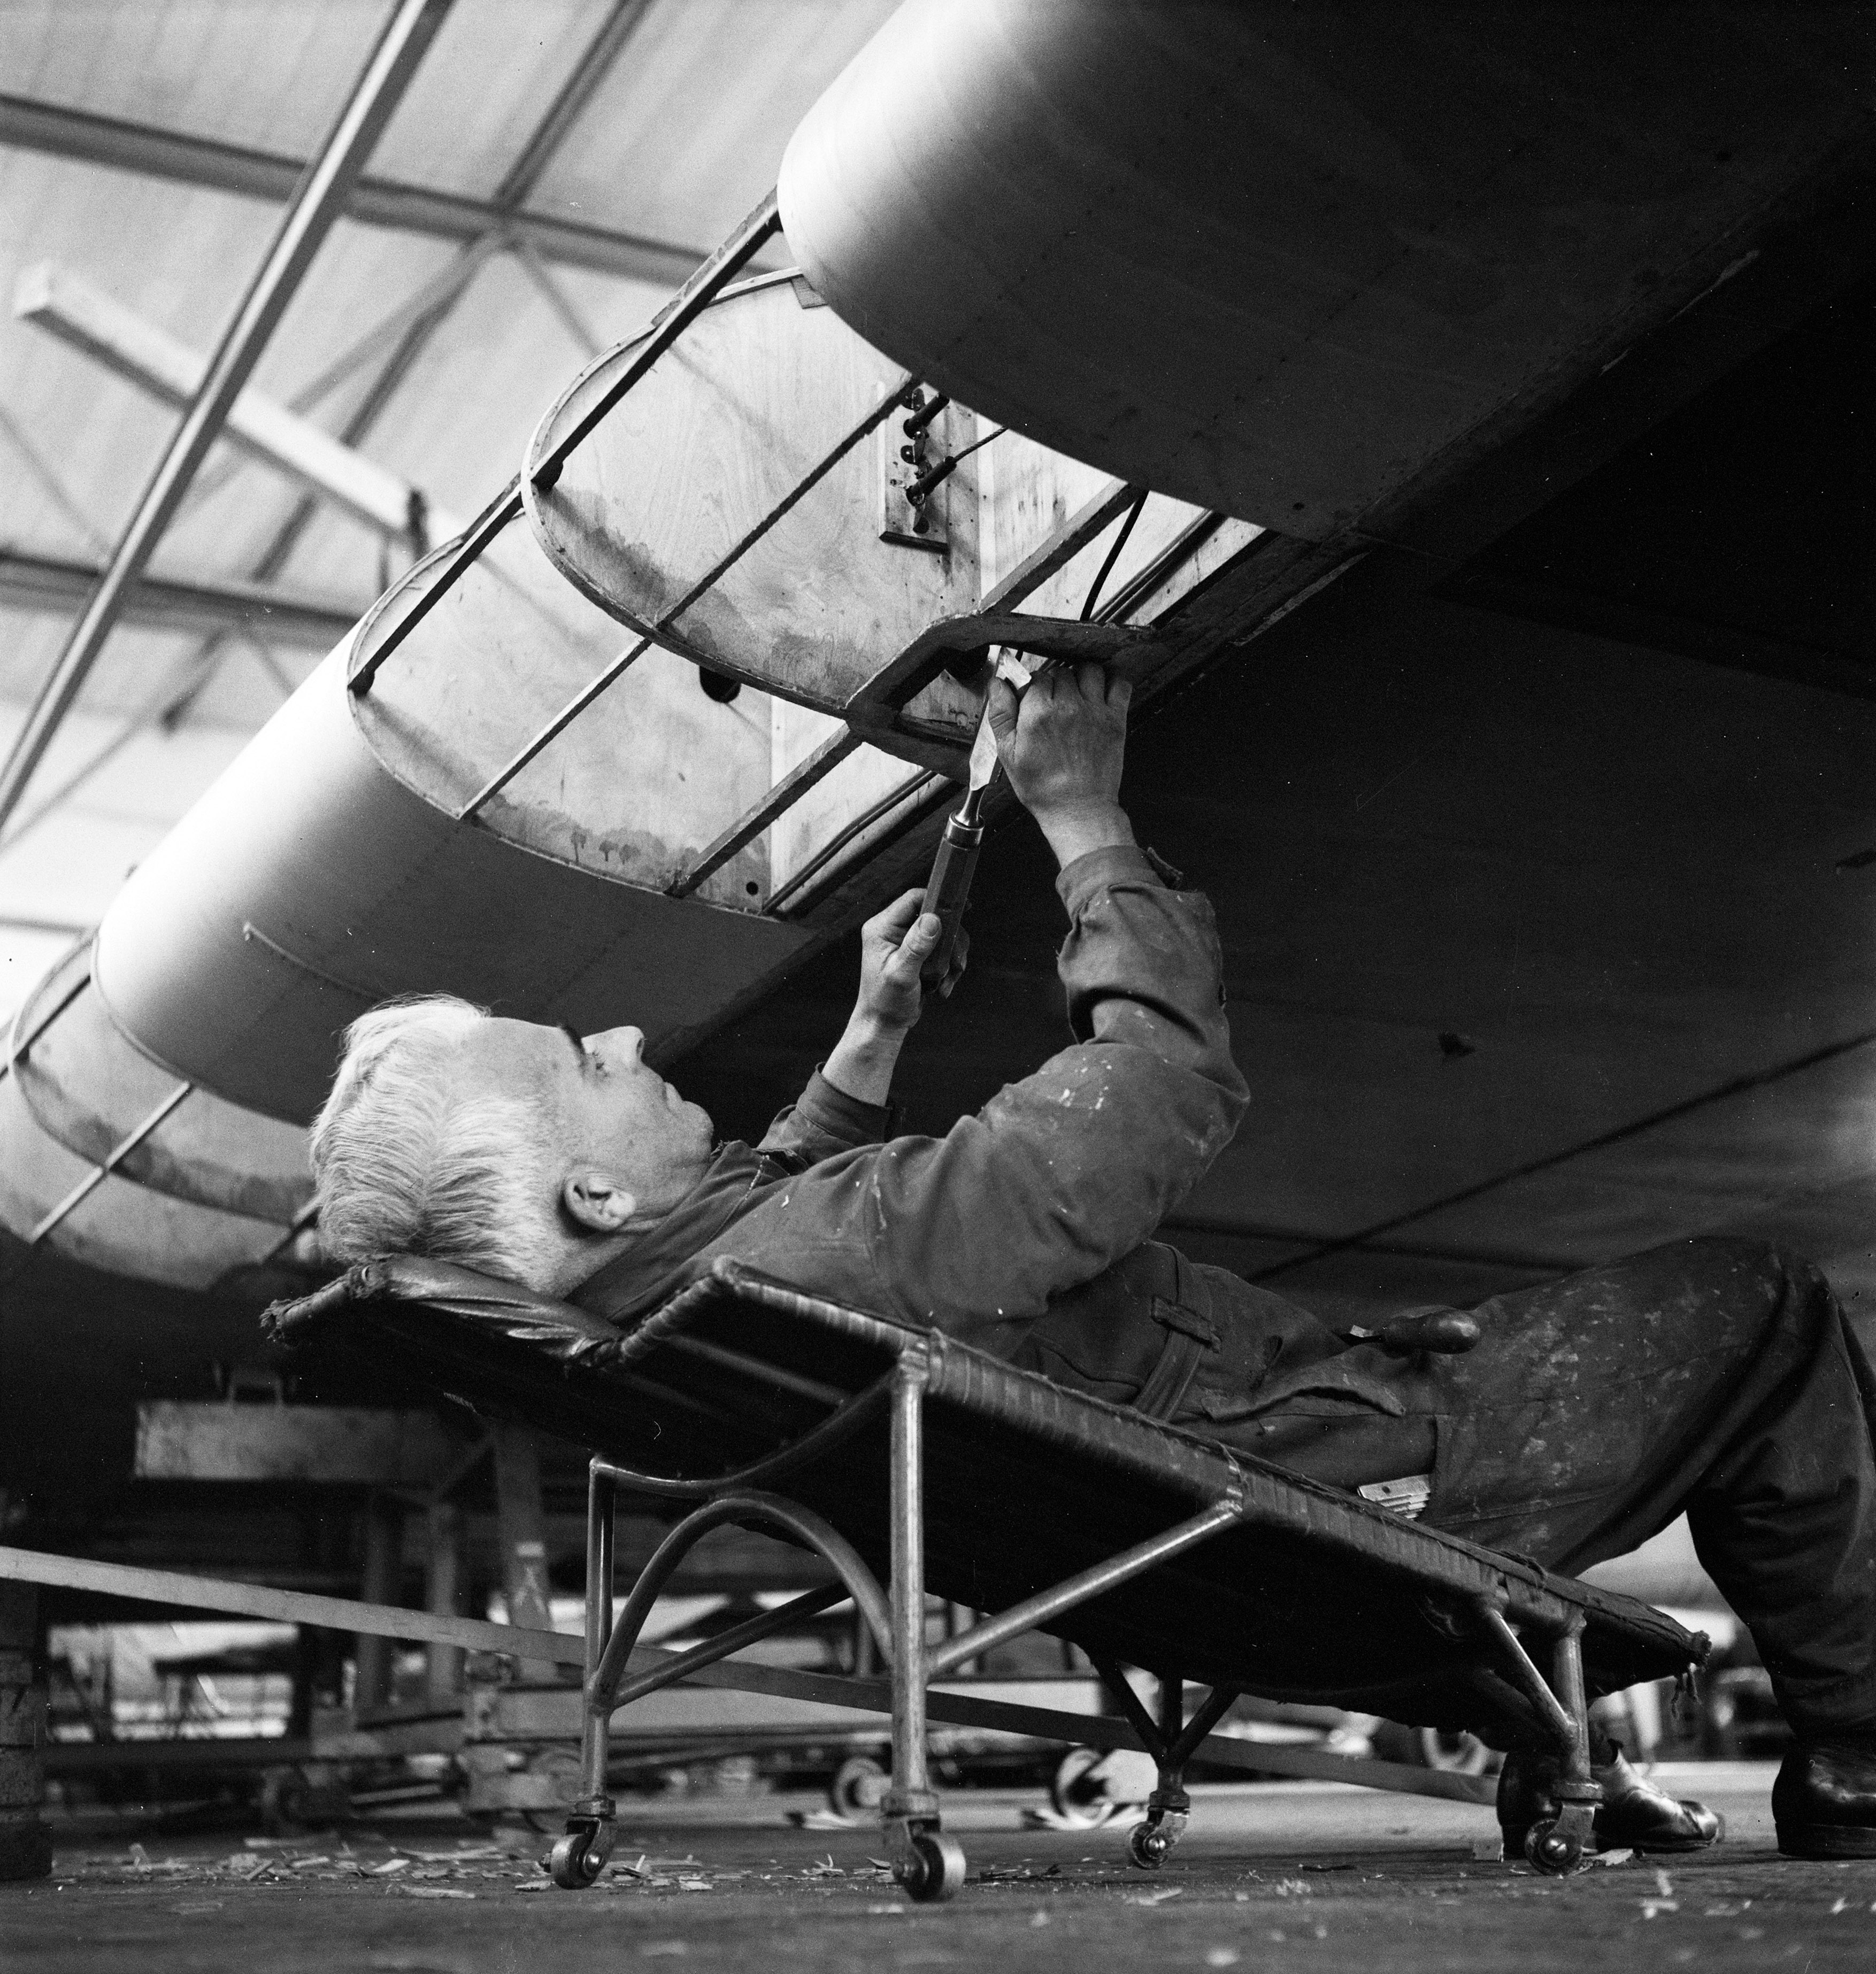 Repairing a wing at a hangar at Dübendorf in the 1930s